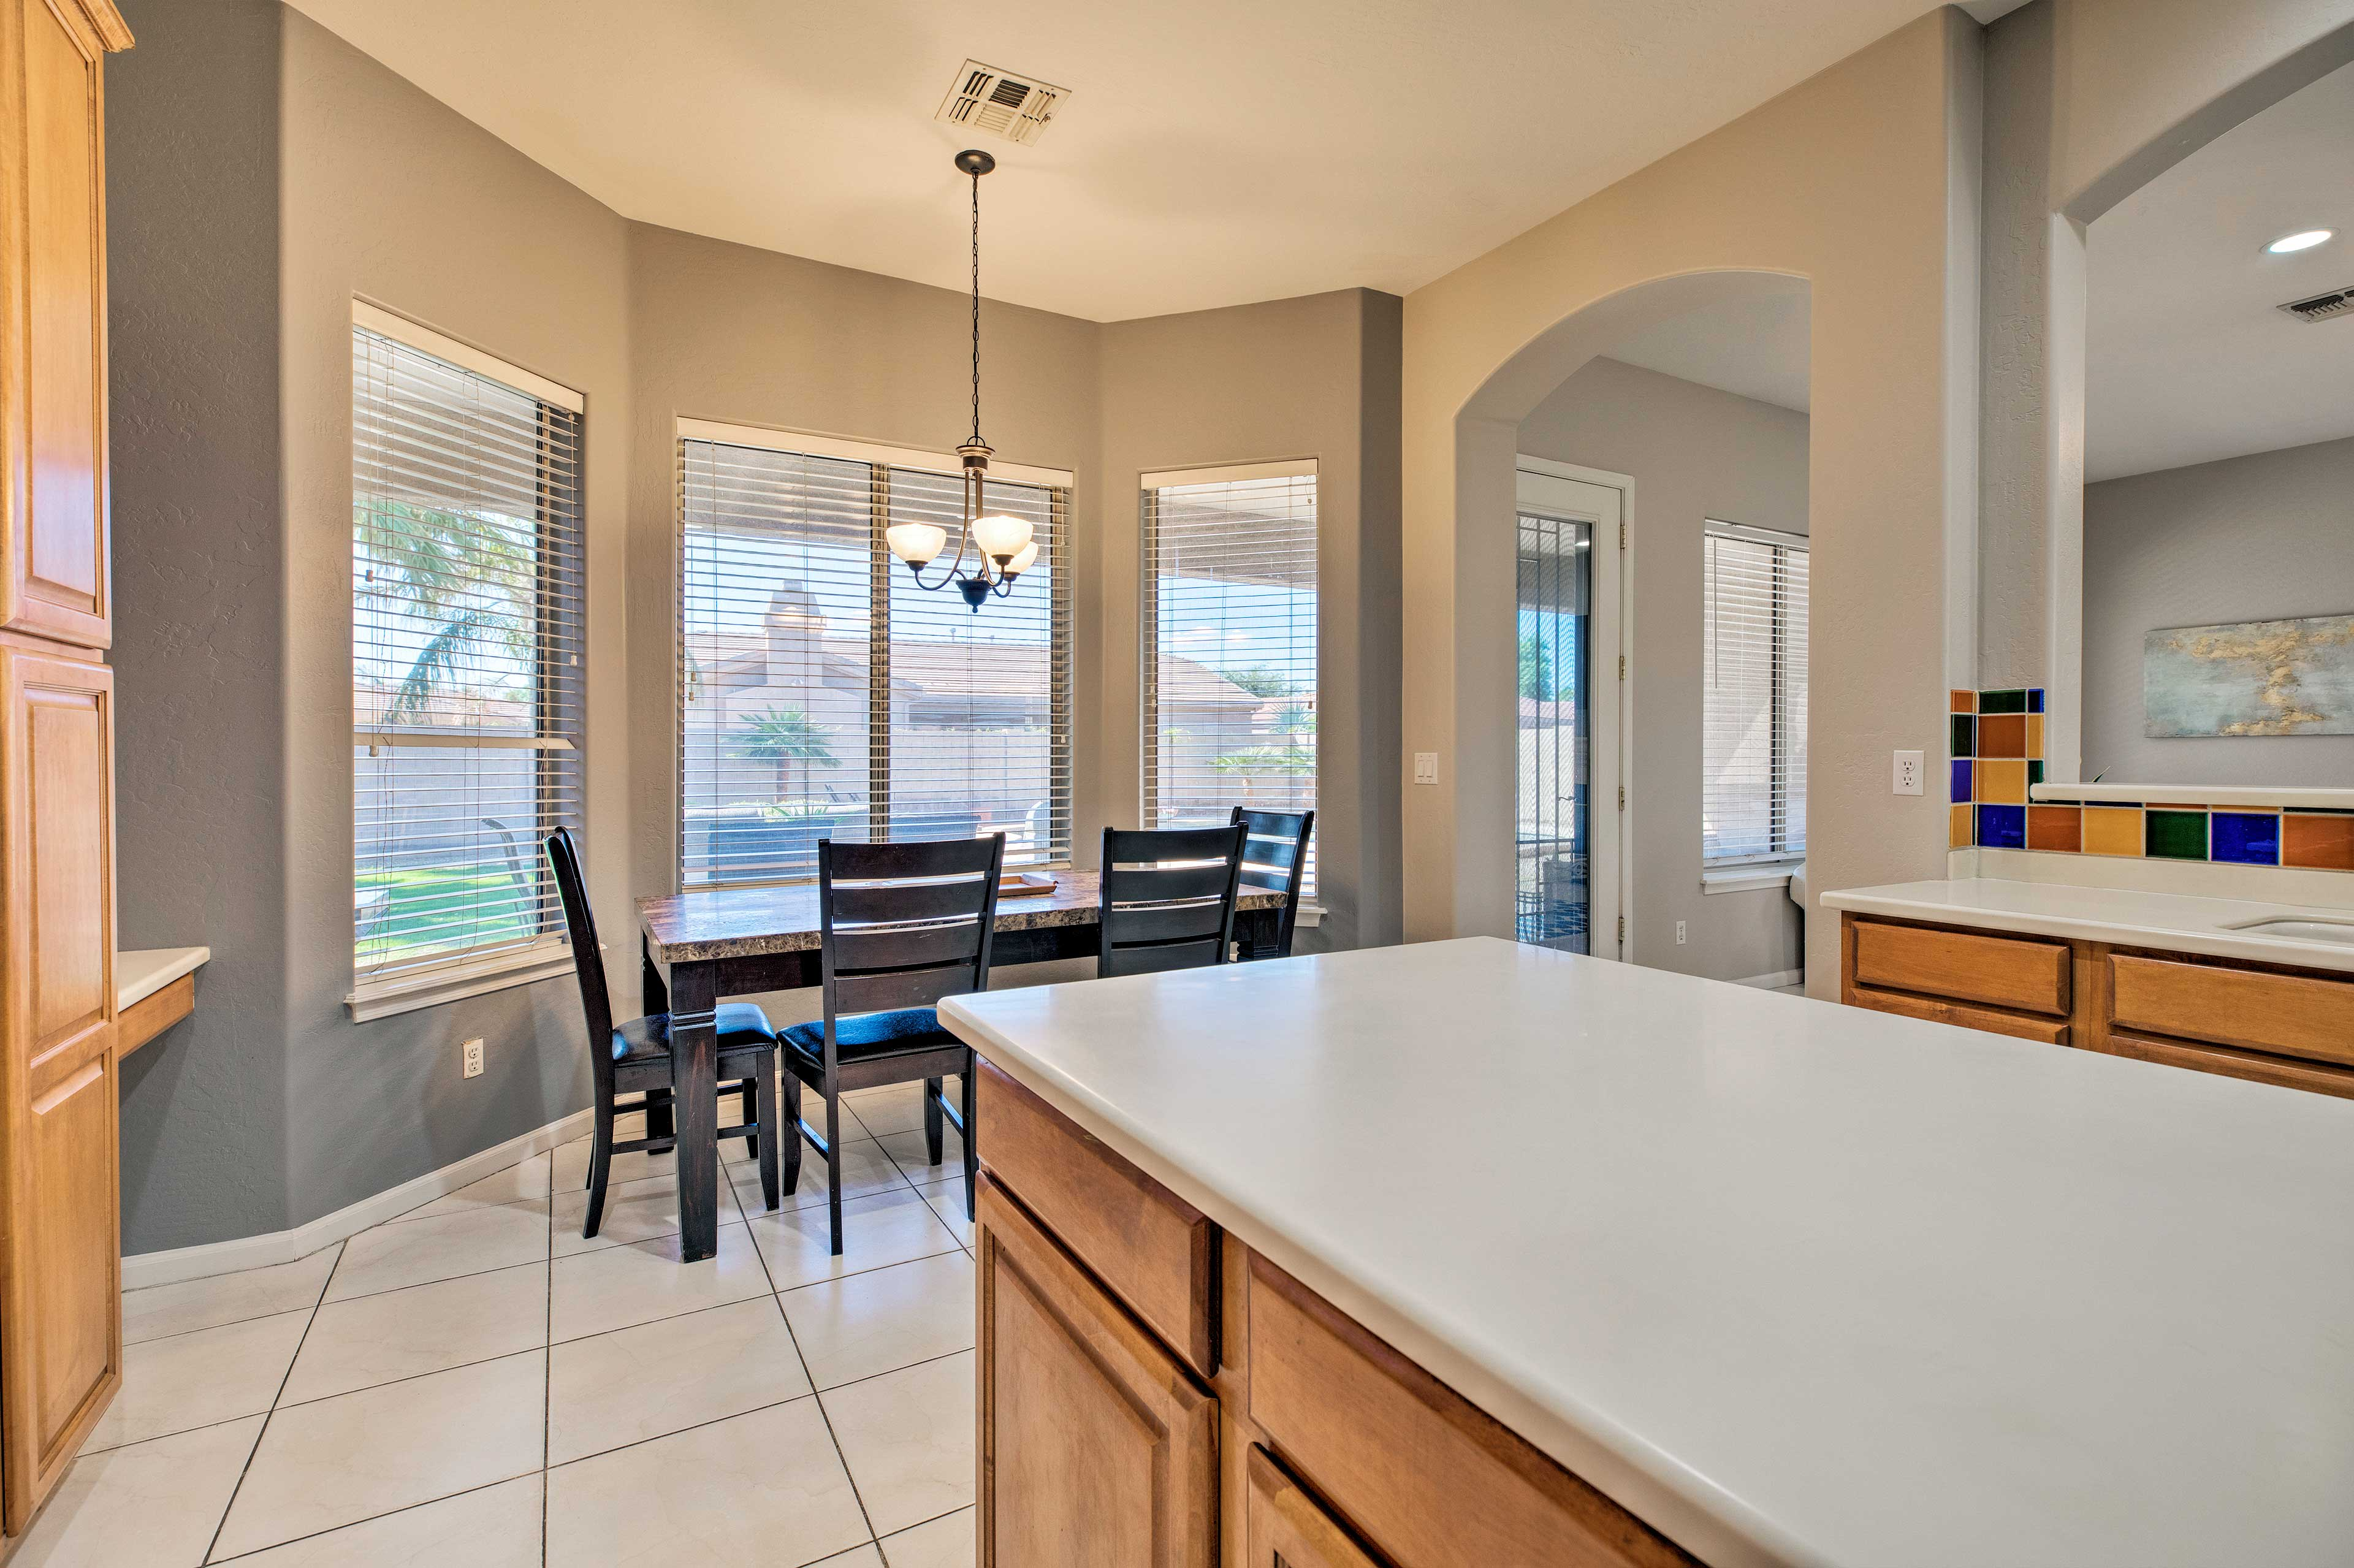 There is ample counter space to prepare your culinary creations.